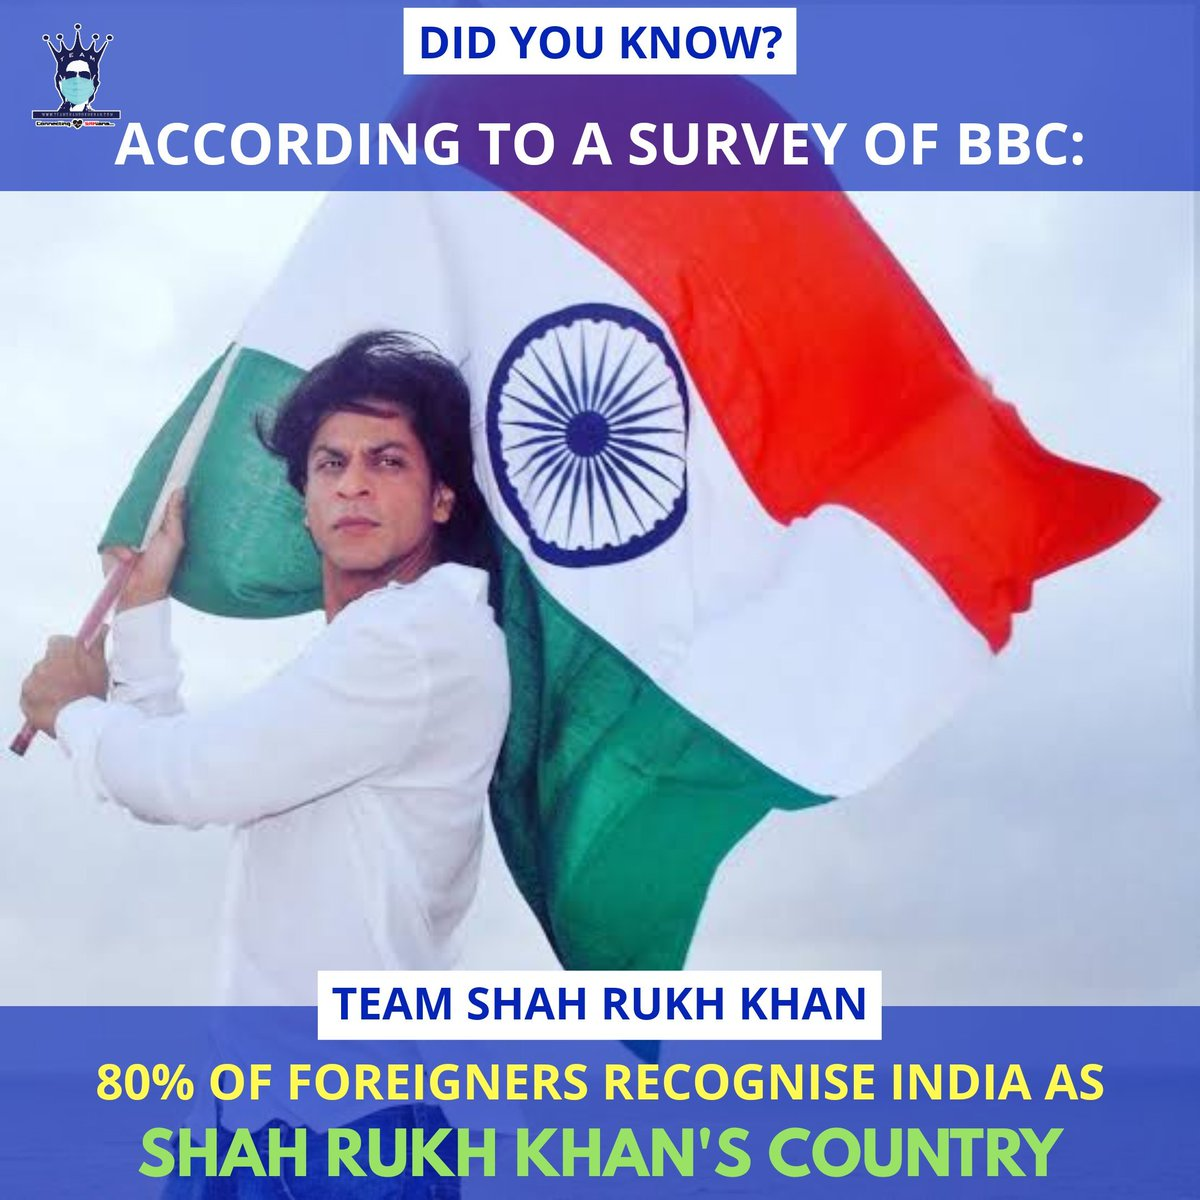 Did you know?  According to a survey conducted by BBC few years ago, it's reported that 80% foreigners recognise India as Shah Rukh Khan's country 😍  @iamsrk @RedChilliesEnt @teamsrkfc Representing India 🇮🇳 Global 😍  #GlobalSuperstarSRK #ShahRukhKhan #TeamShahRukhKhan https://t.co/B3qYOYD9uX